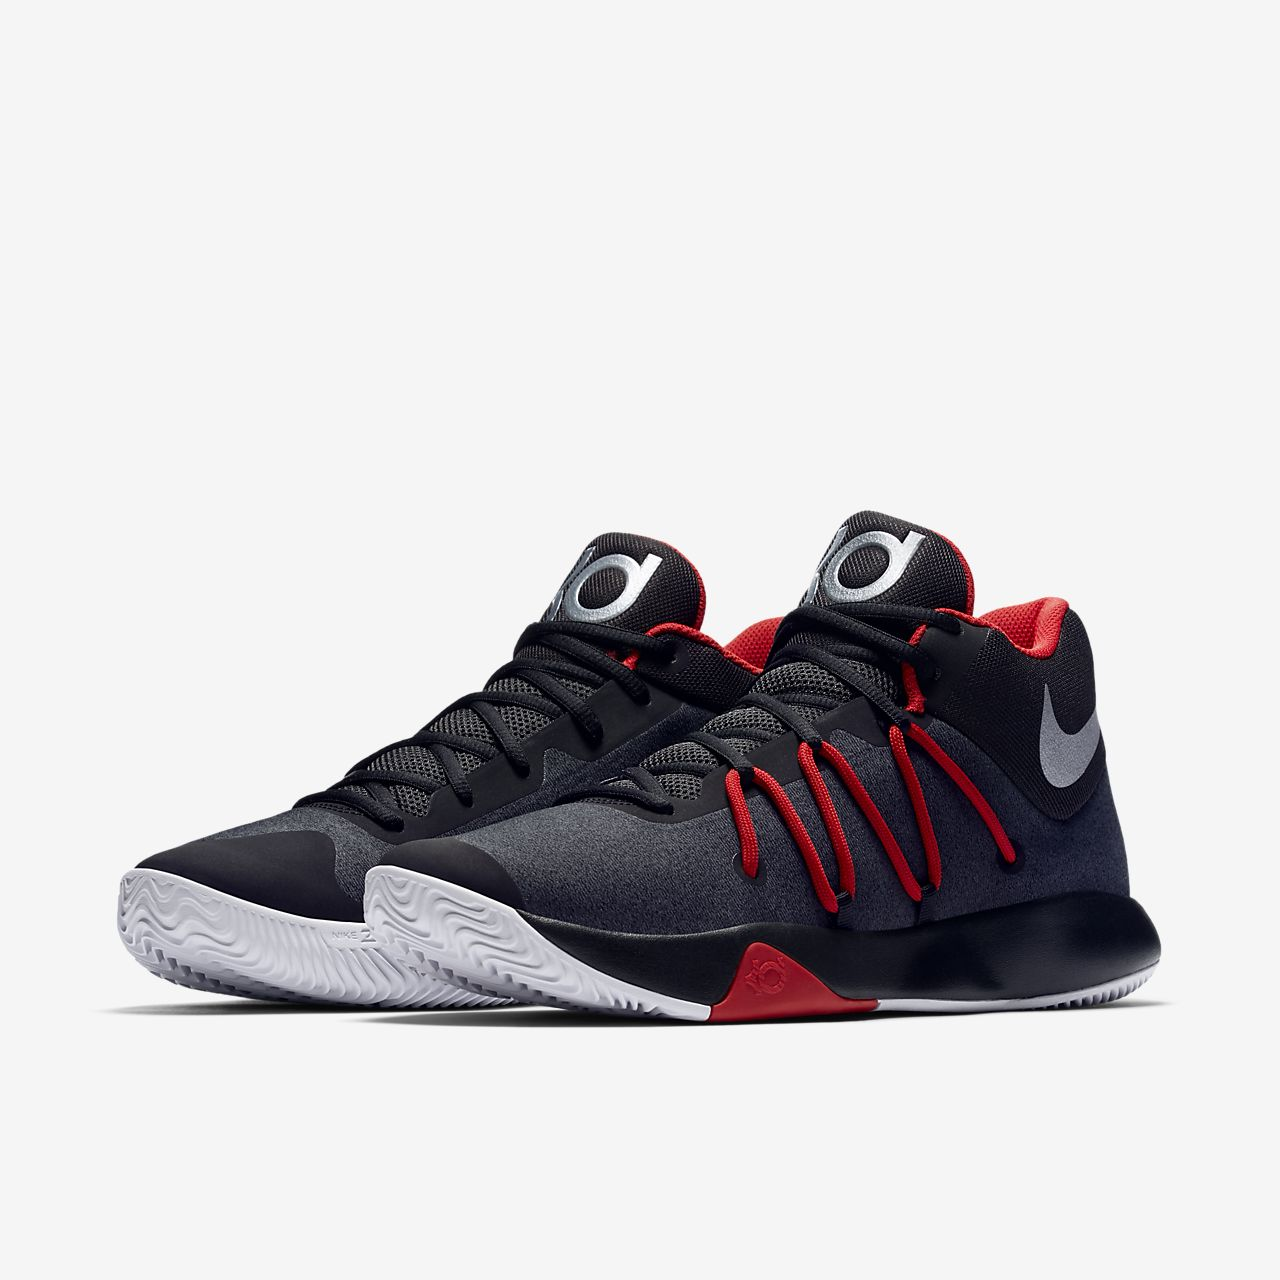 nike 360 kd sneakers for boys